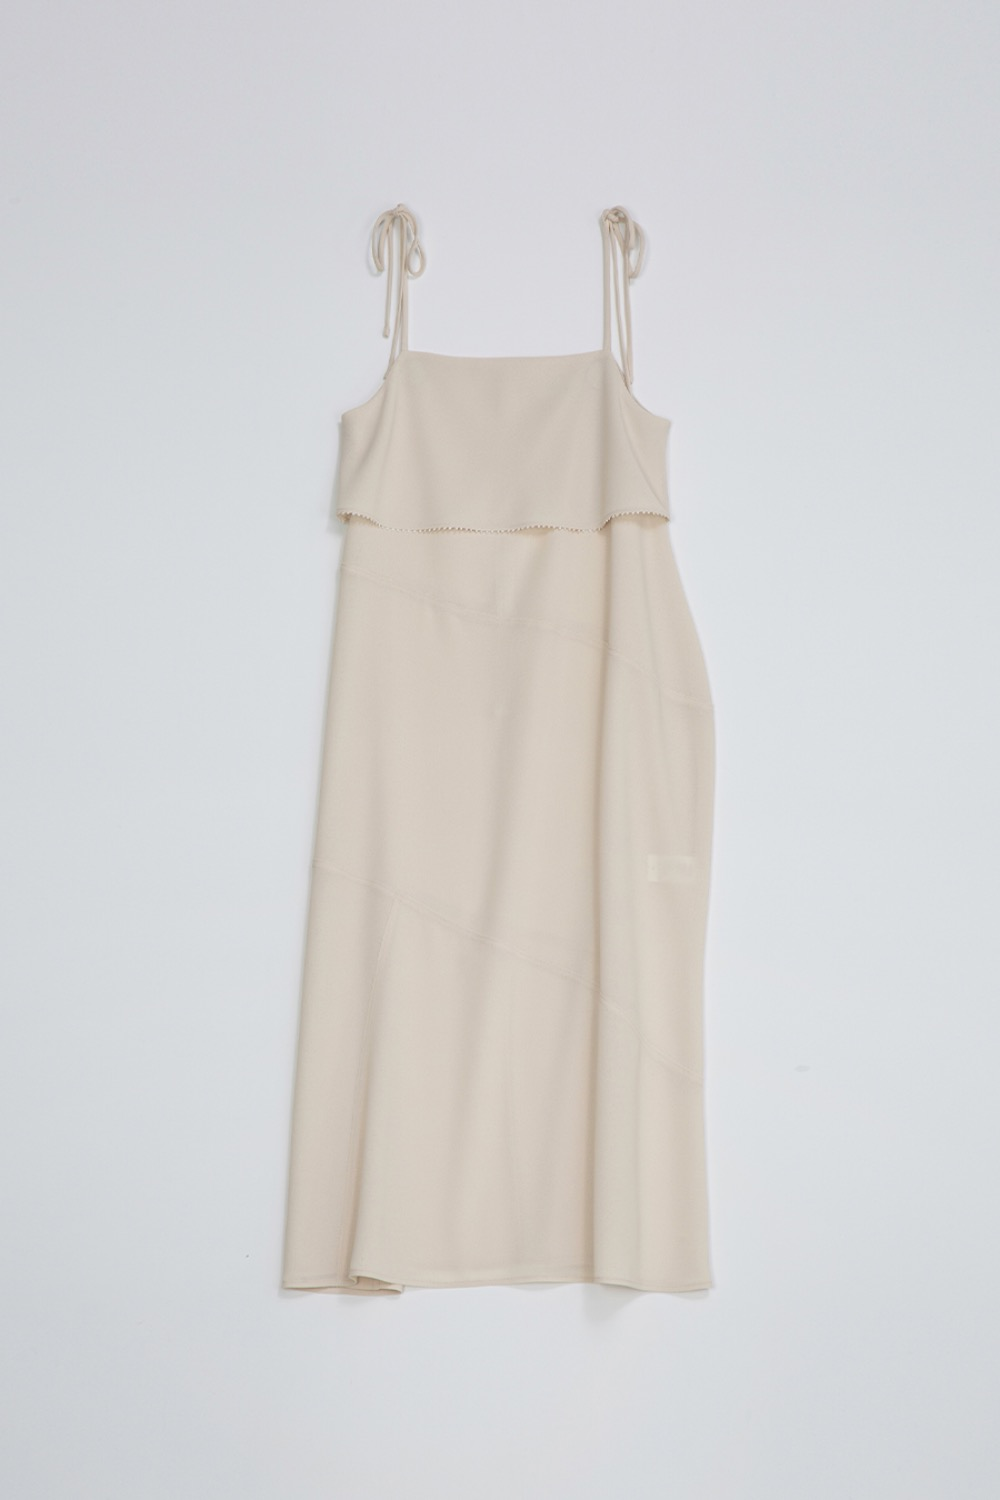 EN FETE SLIP DRESS - CREME CREPE